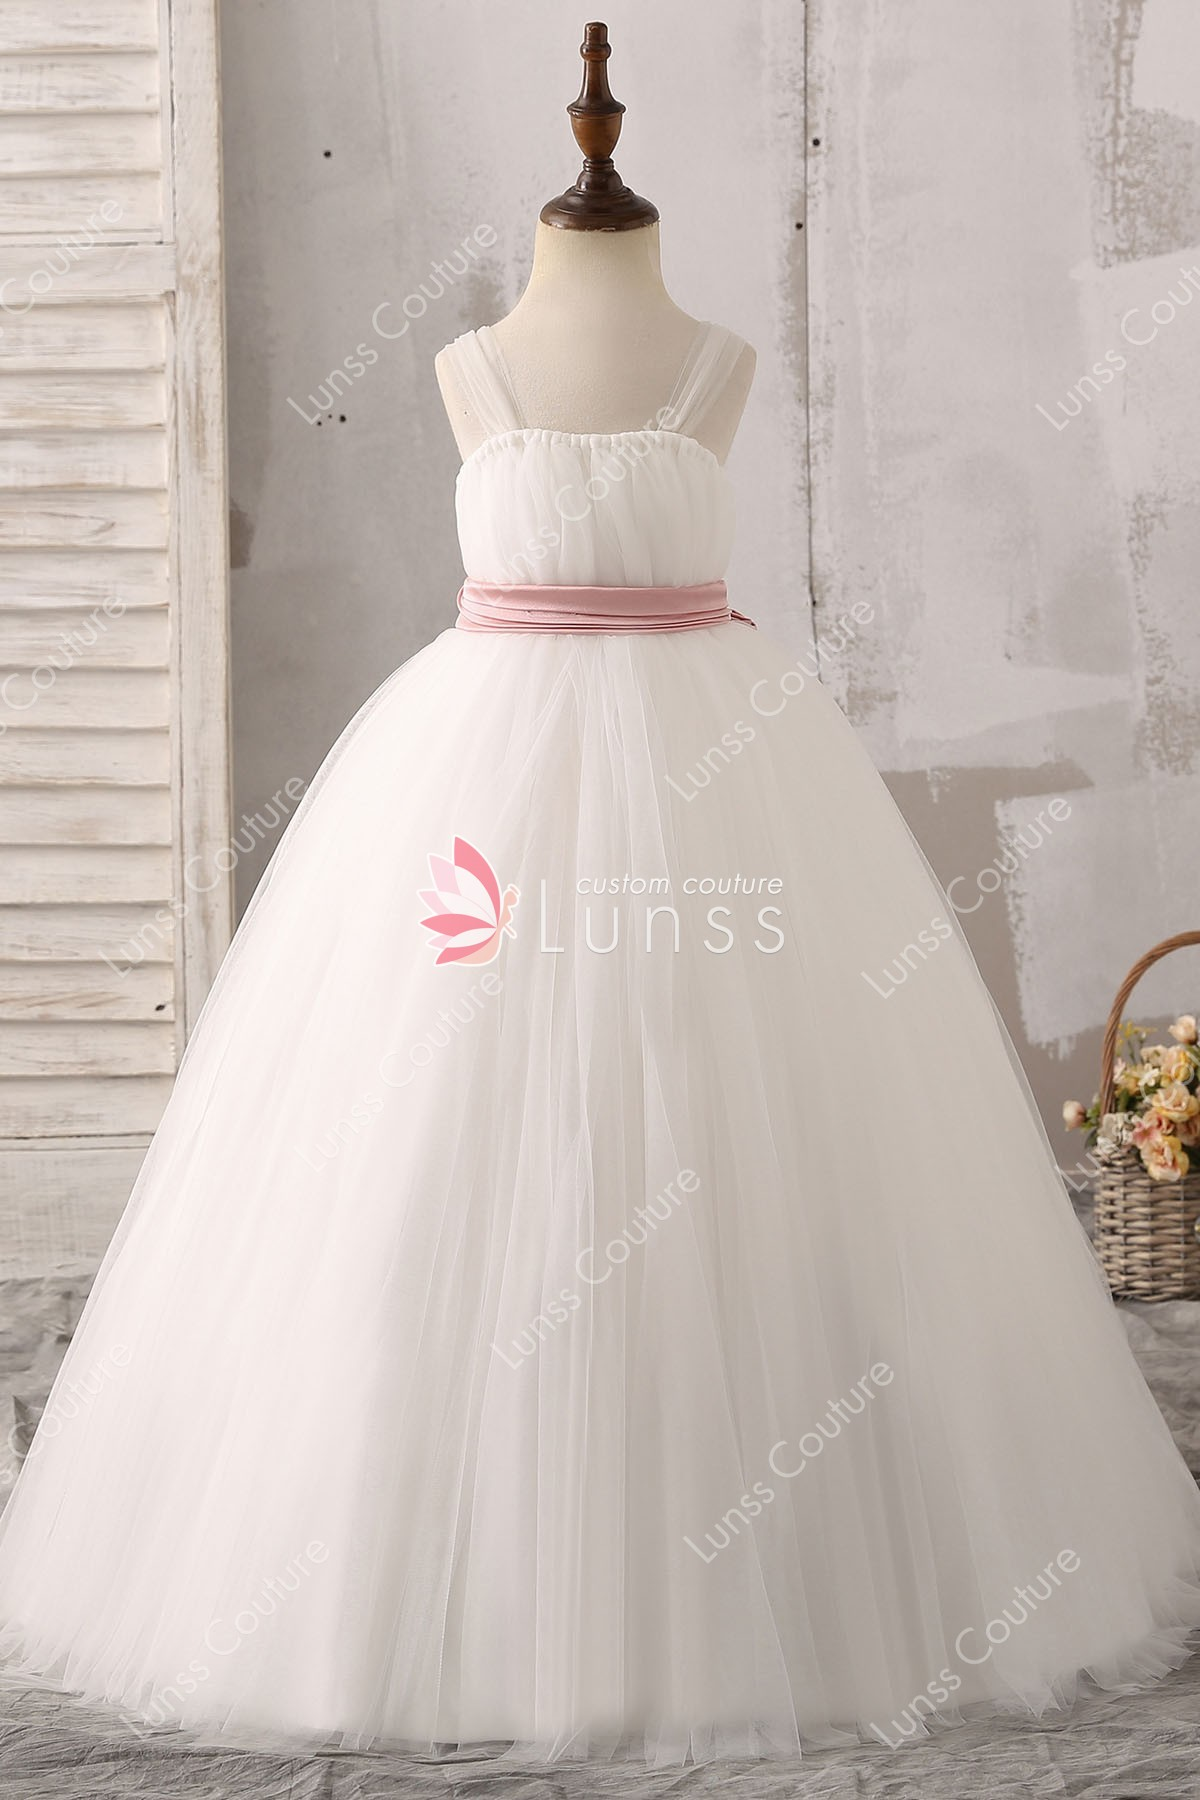 Ball Gown Illusion Tulle Straps White Floor Length Flower Girl Dress